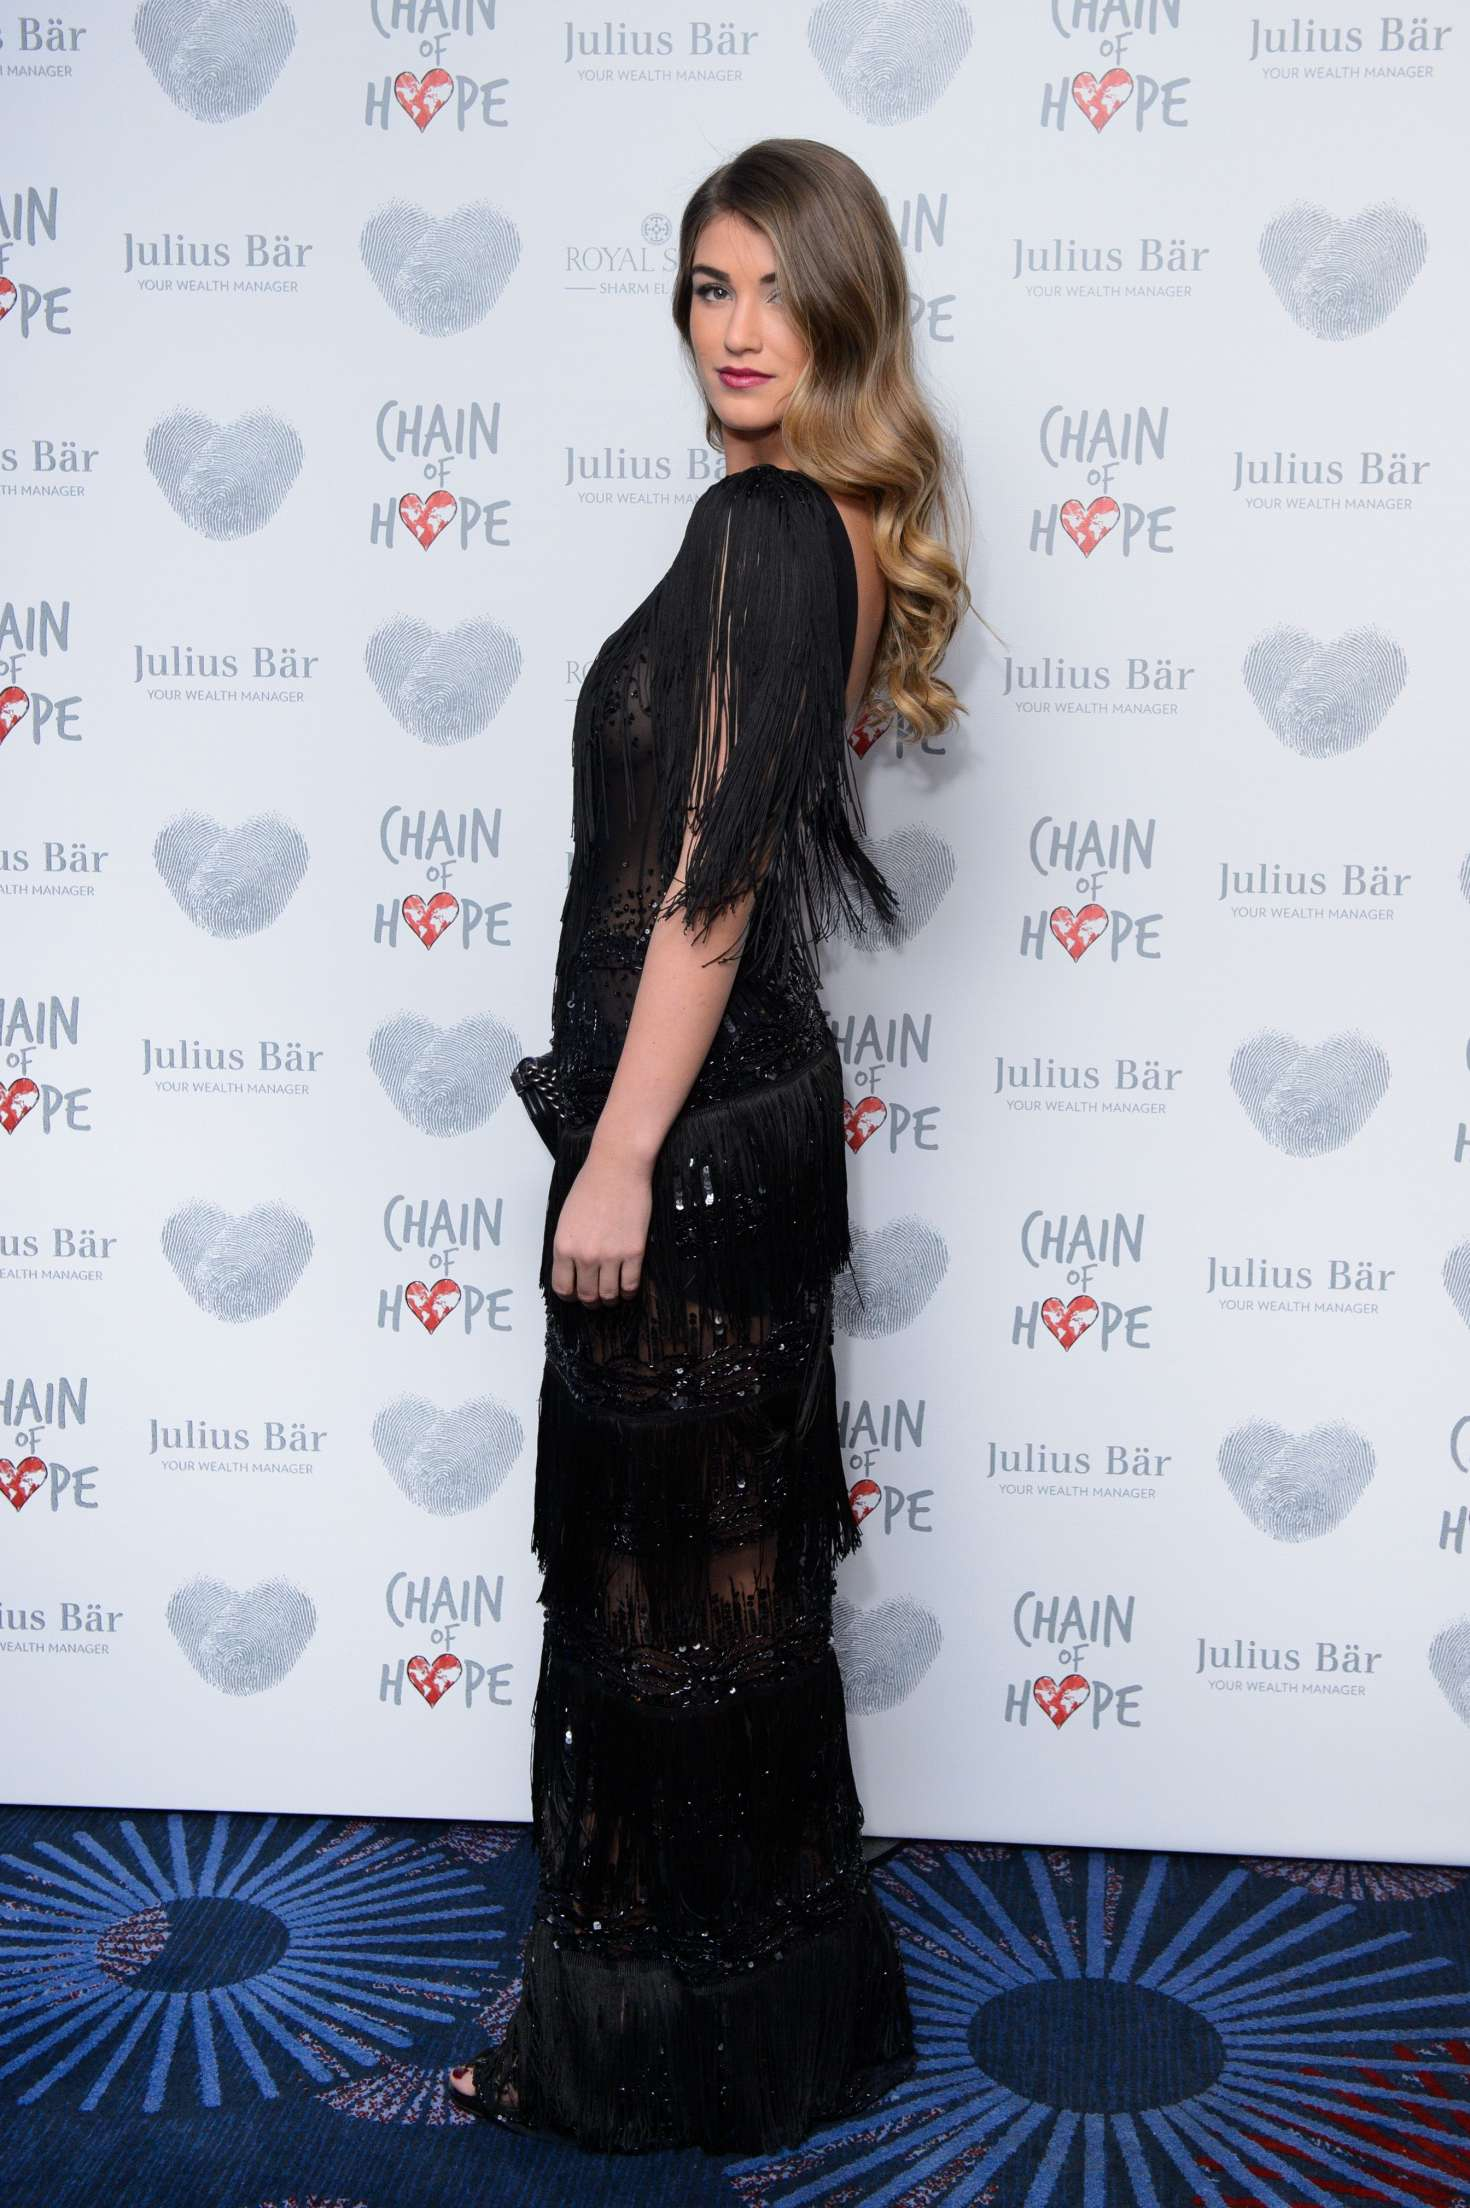 Amy Willerton 2016 : Amy Willerton: Chain Of Hope Annual Gala Ball 2016 -06